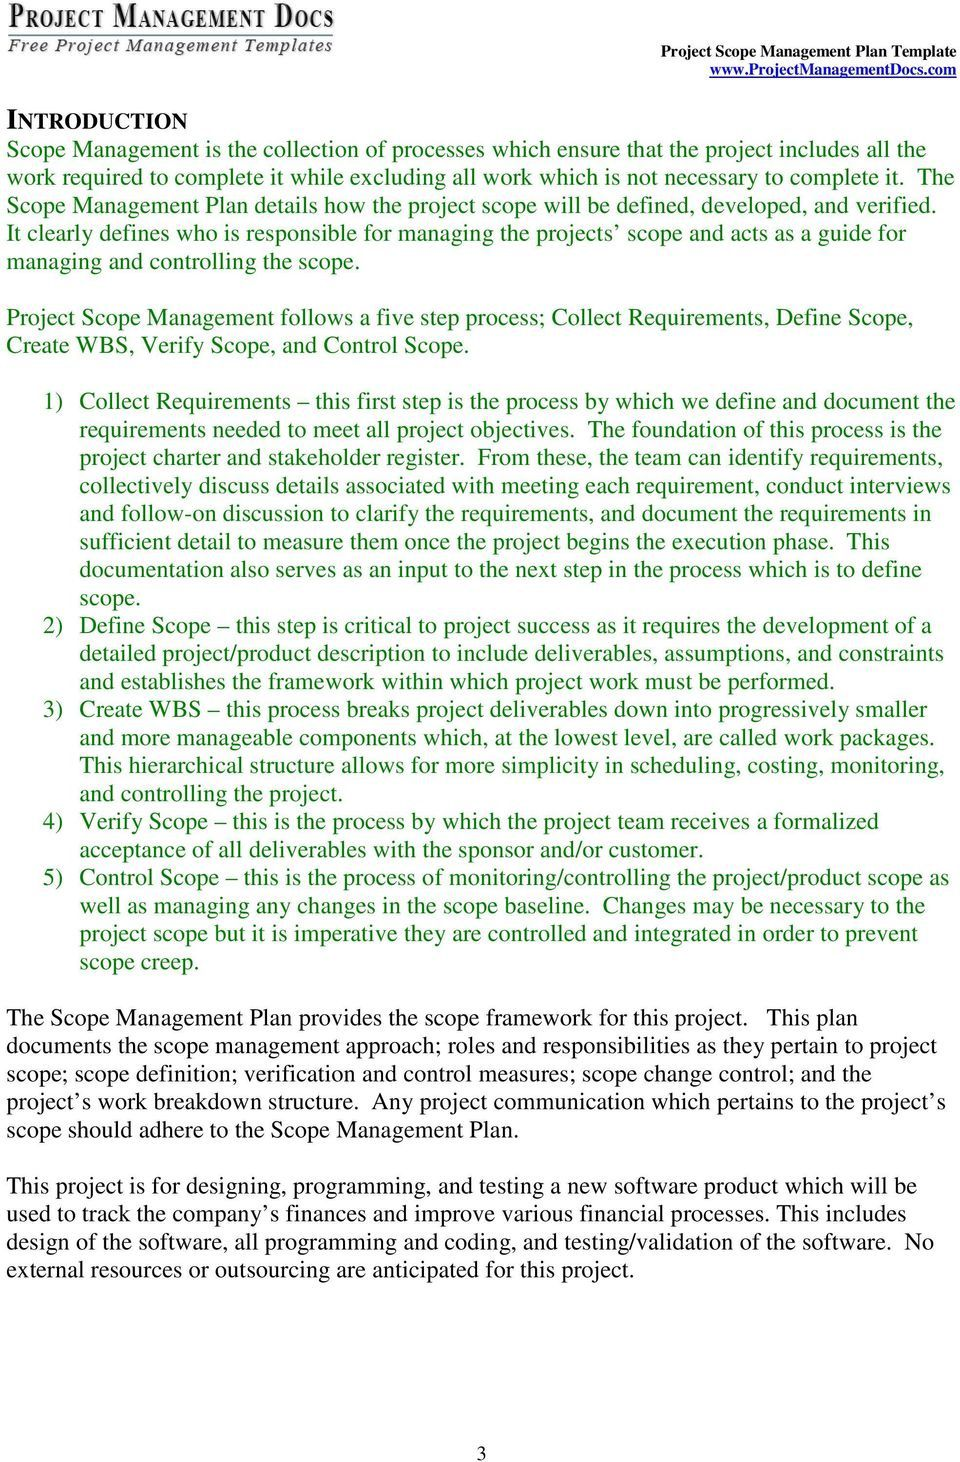 004 Staggering Project Scope Management Plan Template Free Sample Full